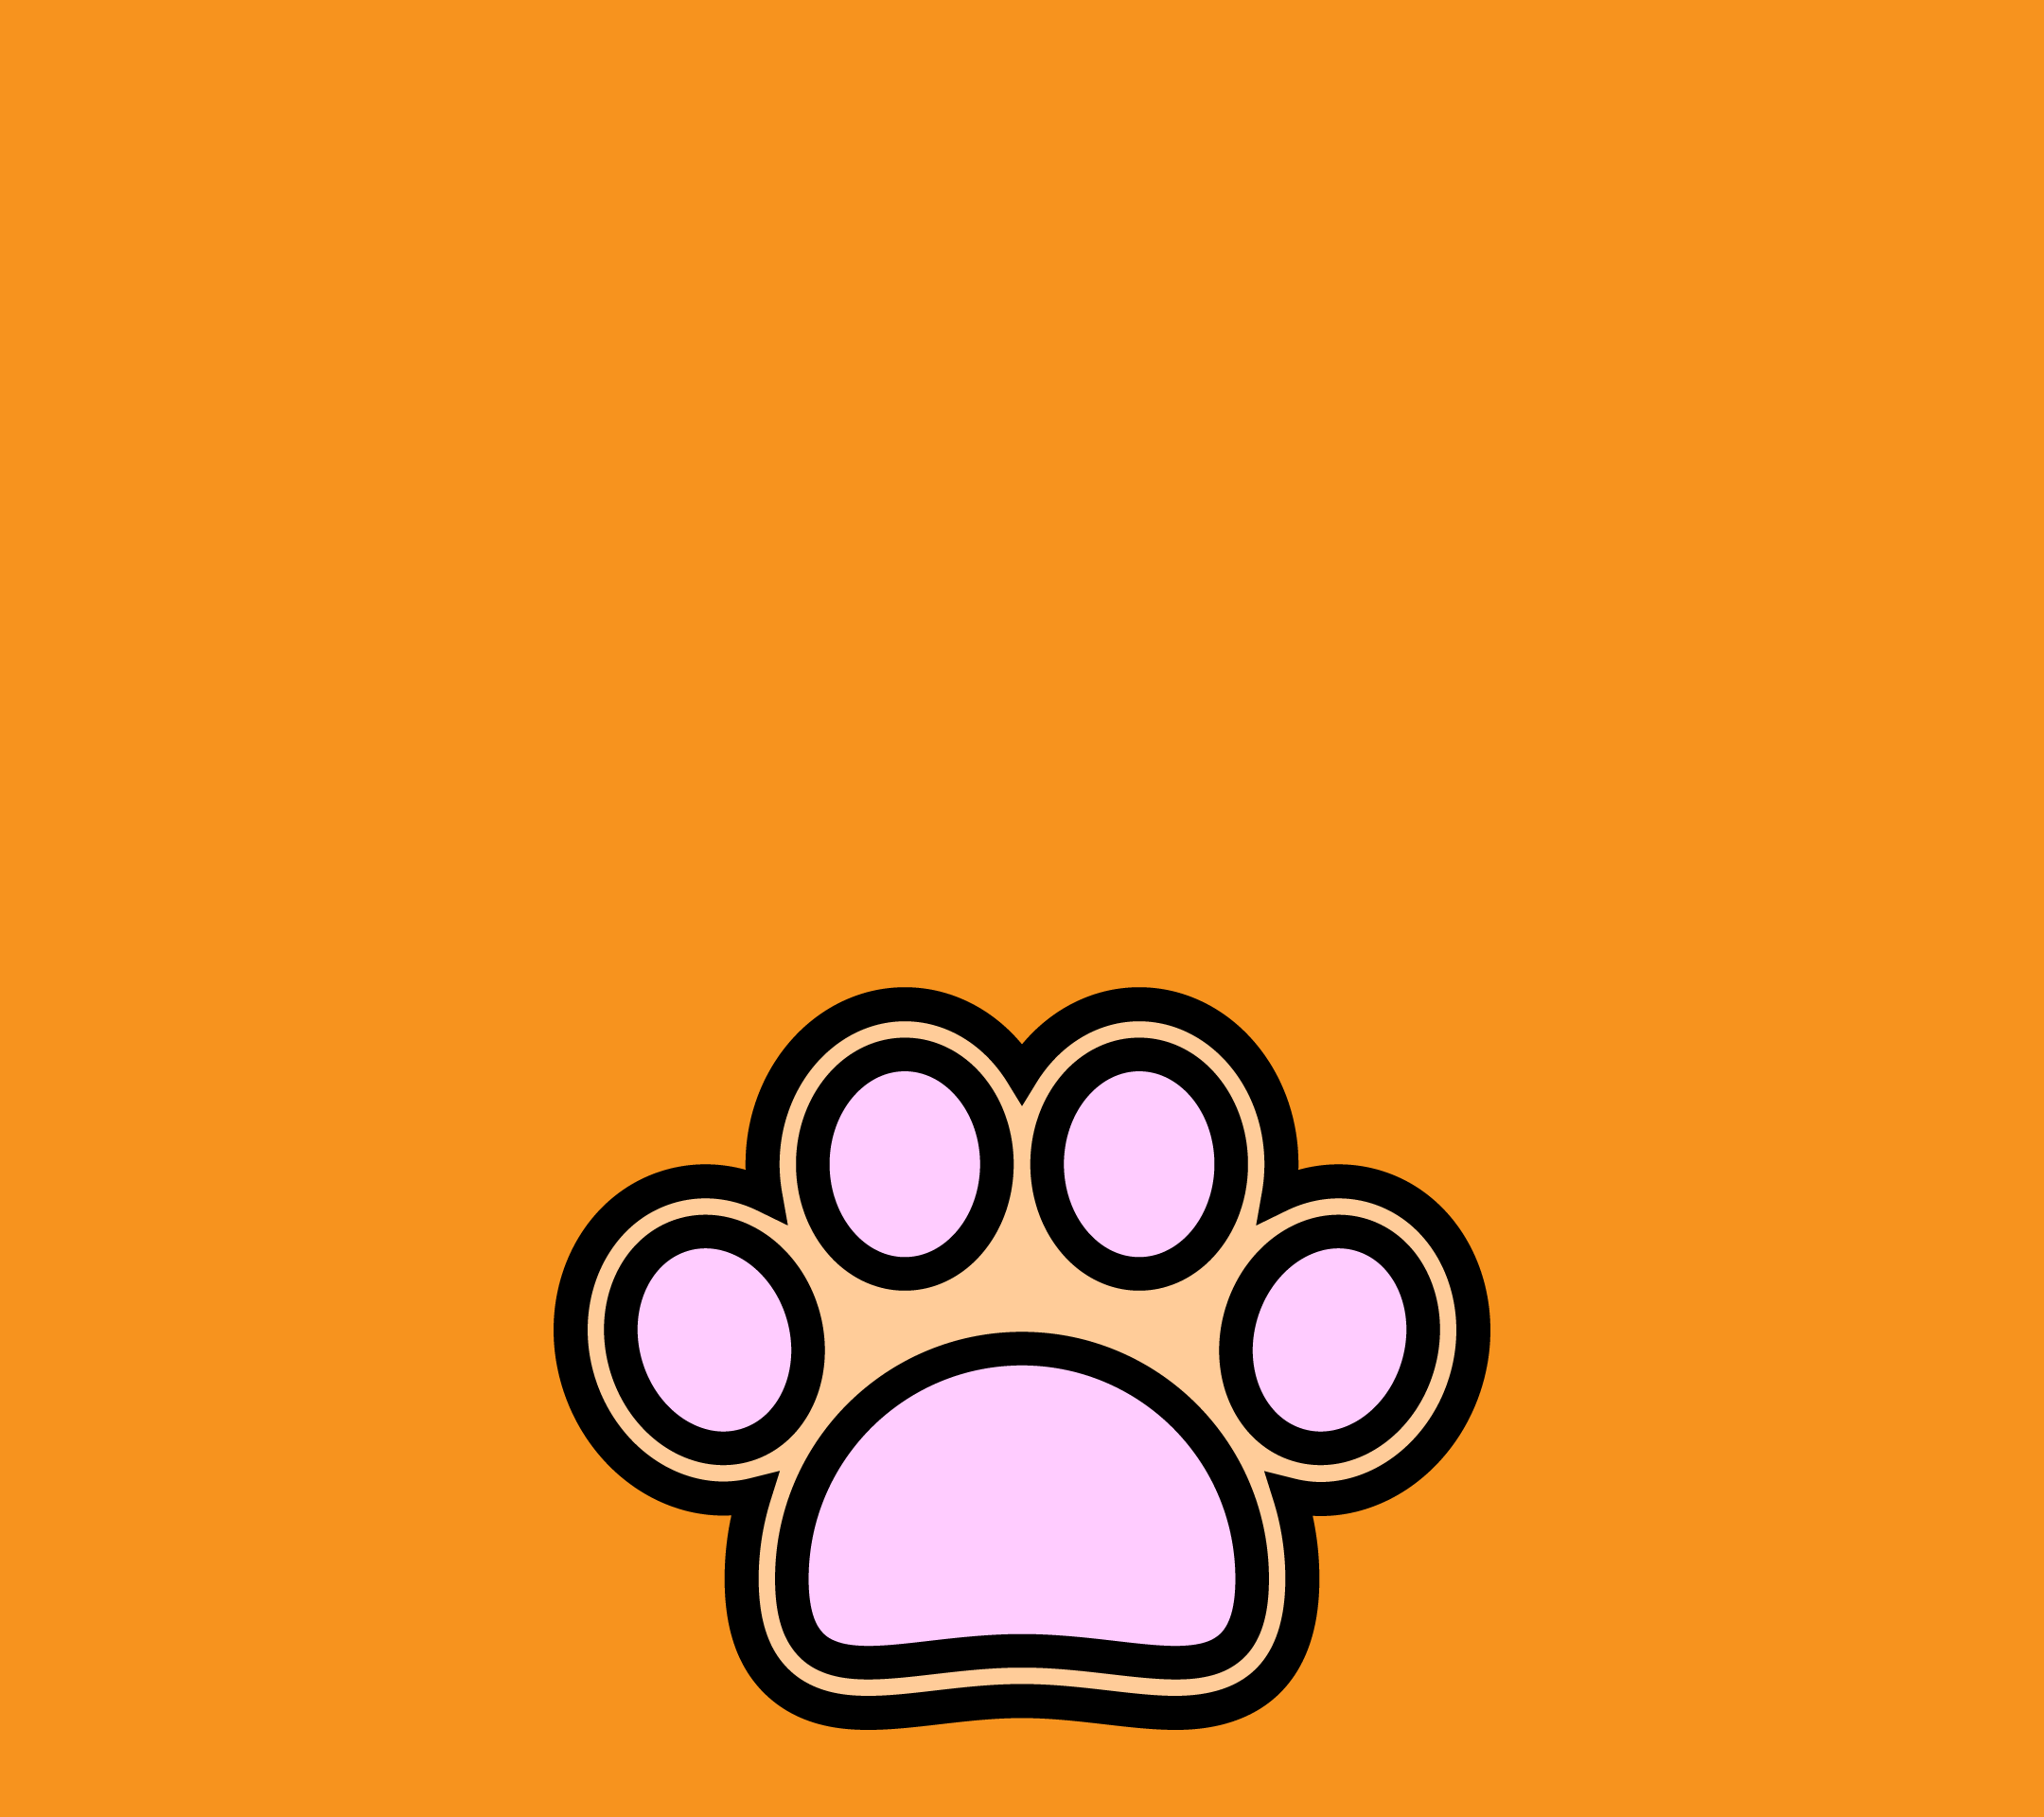 wallpaper3_dogfootprint-orange-android